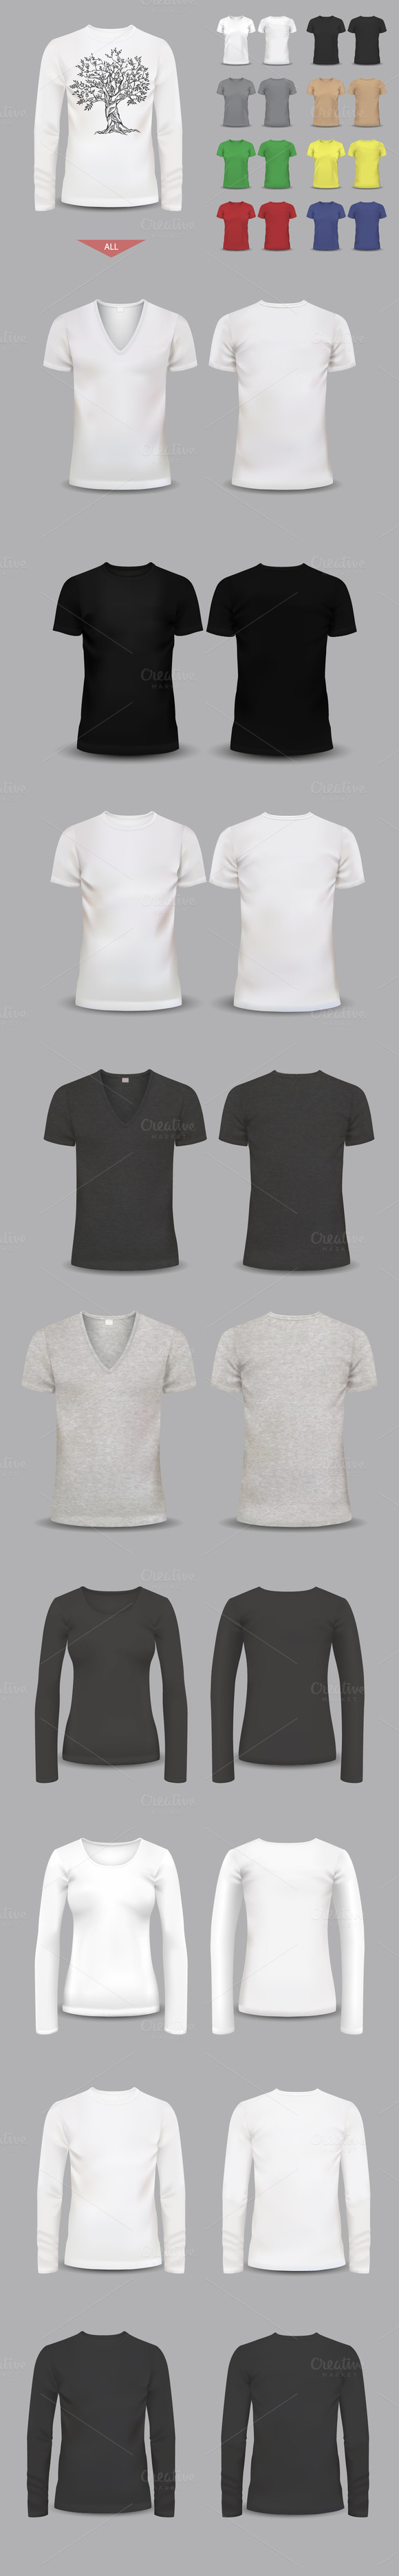 Big Set Of Male And Female T-shirts